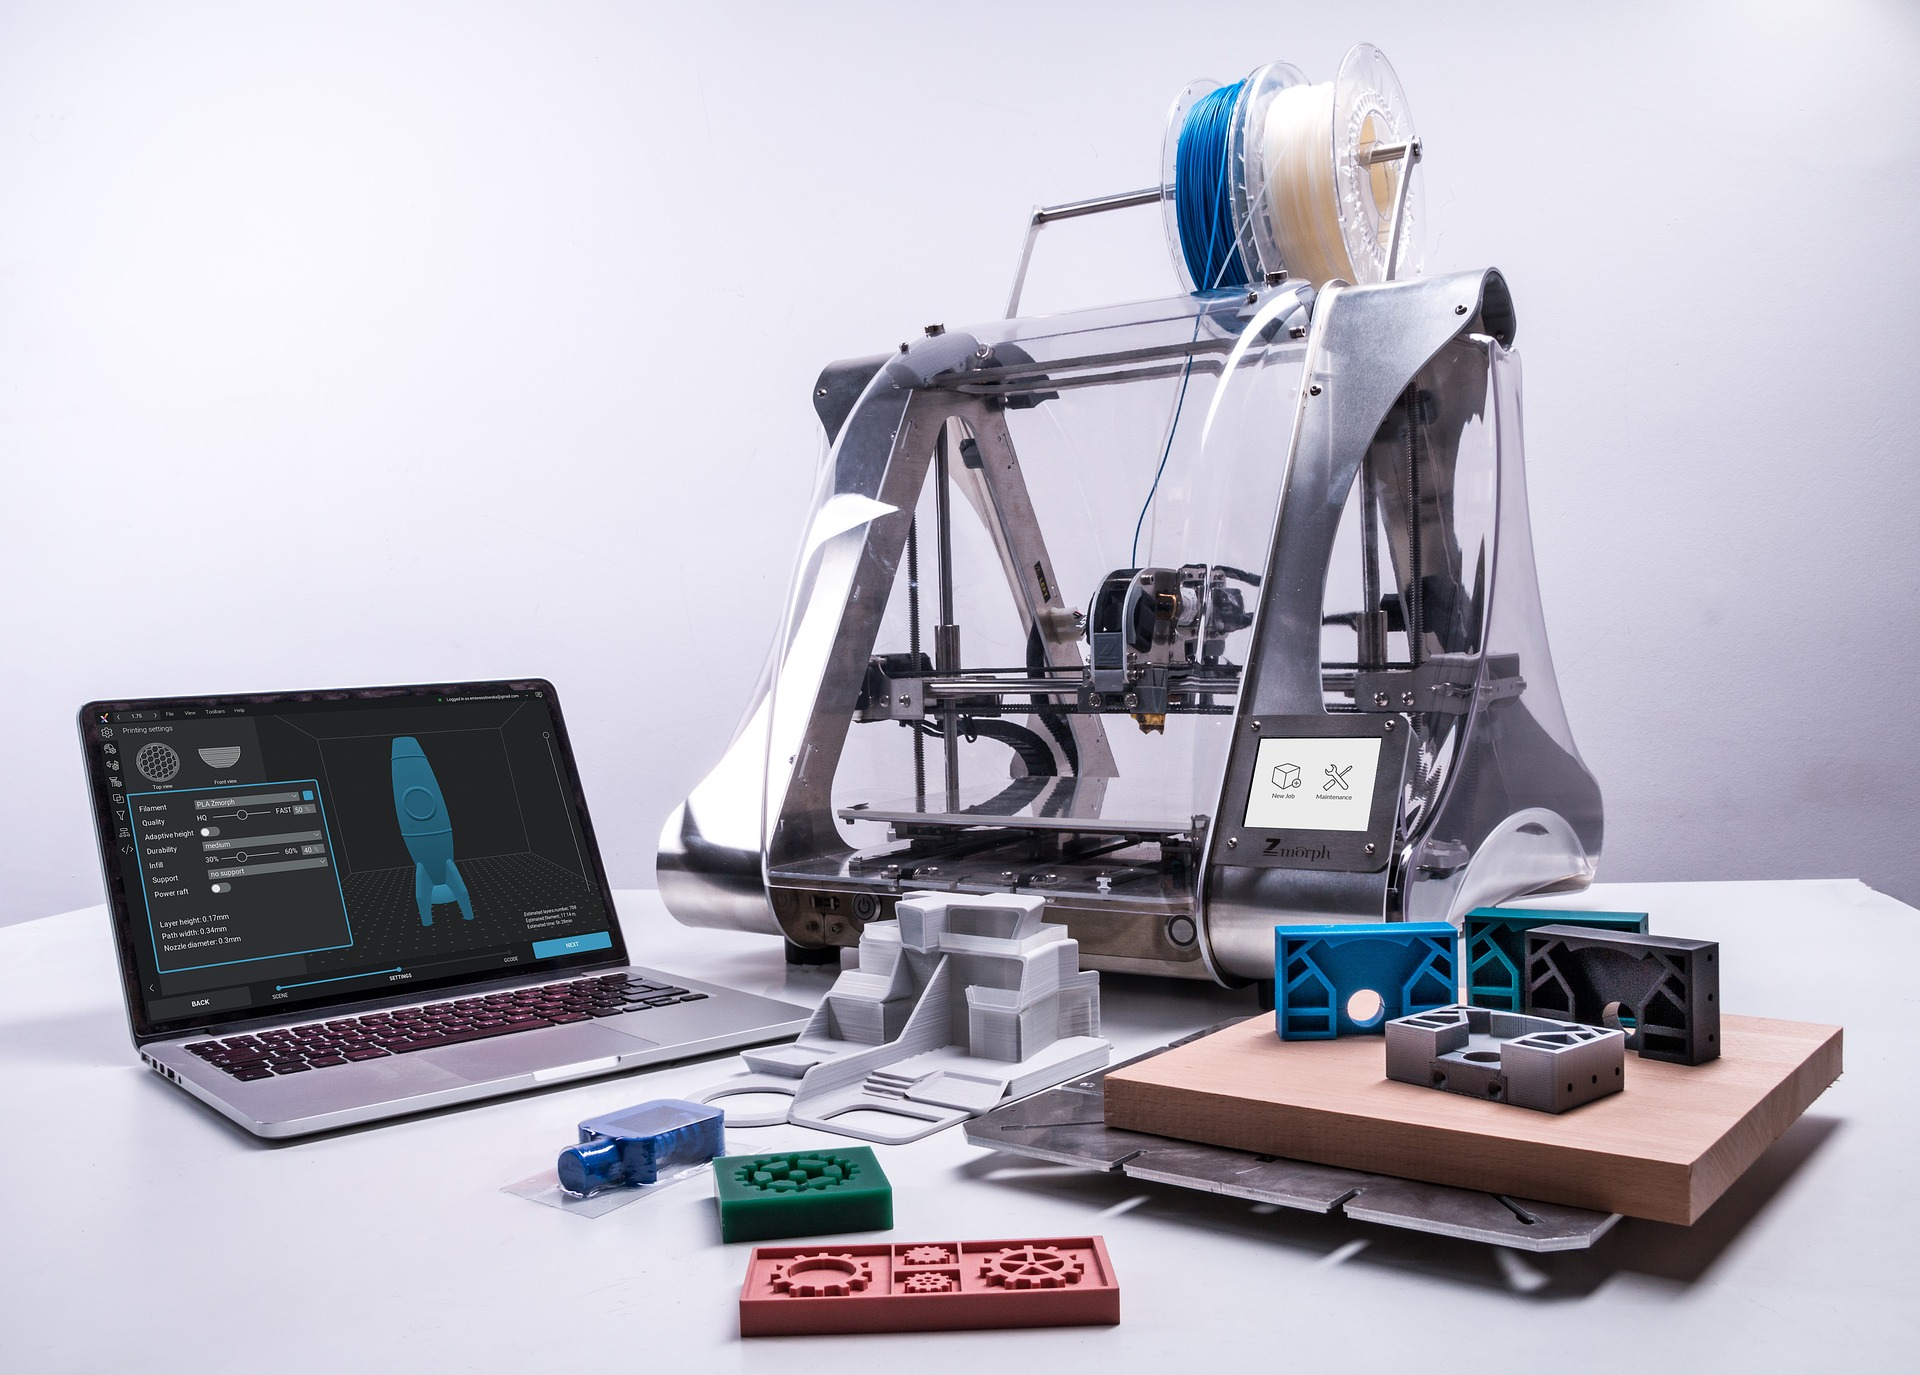 DISEÑO 3D E IMPRESORAS 3D EN EDUCACIÓN – DESIGN 3D AND 3D PRINTERS IN EDUCATION